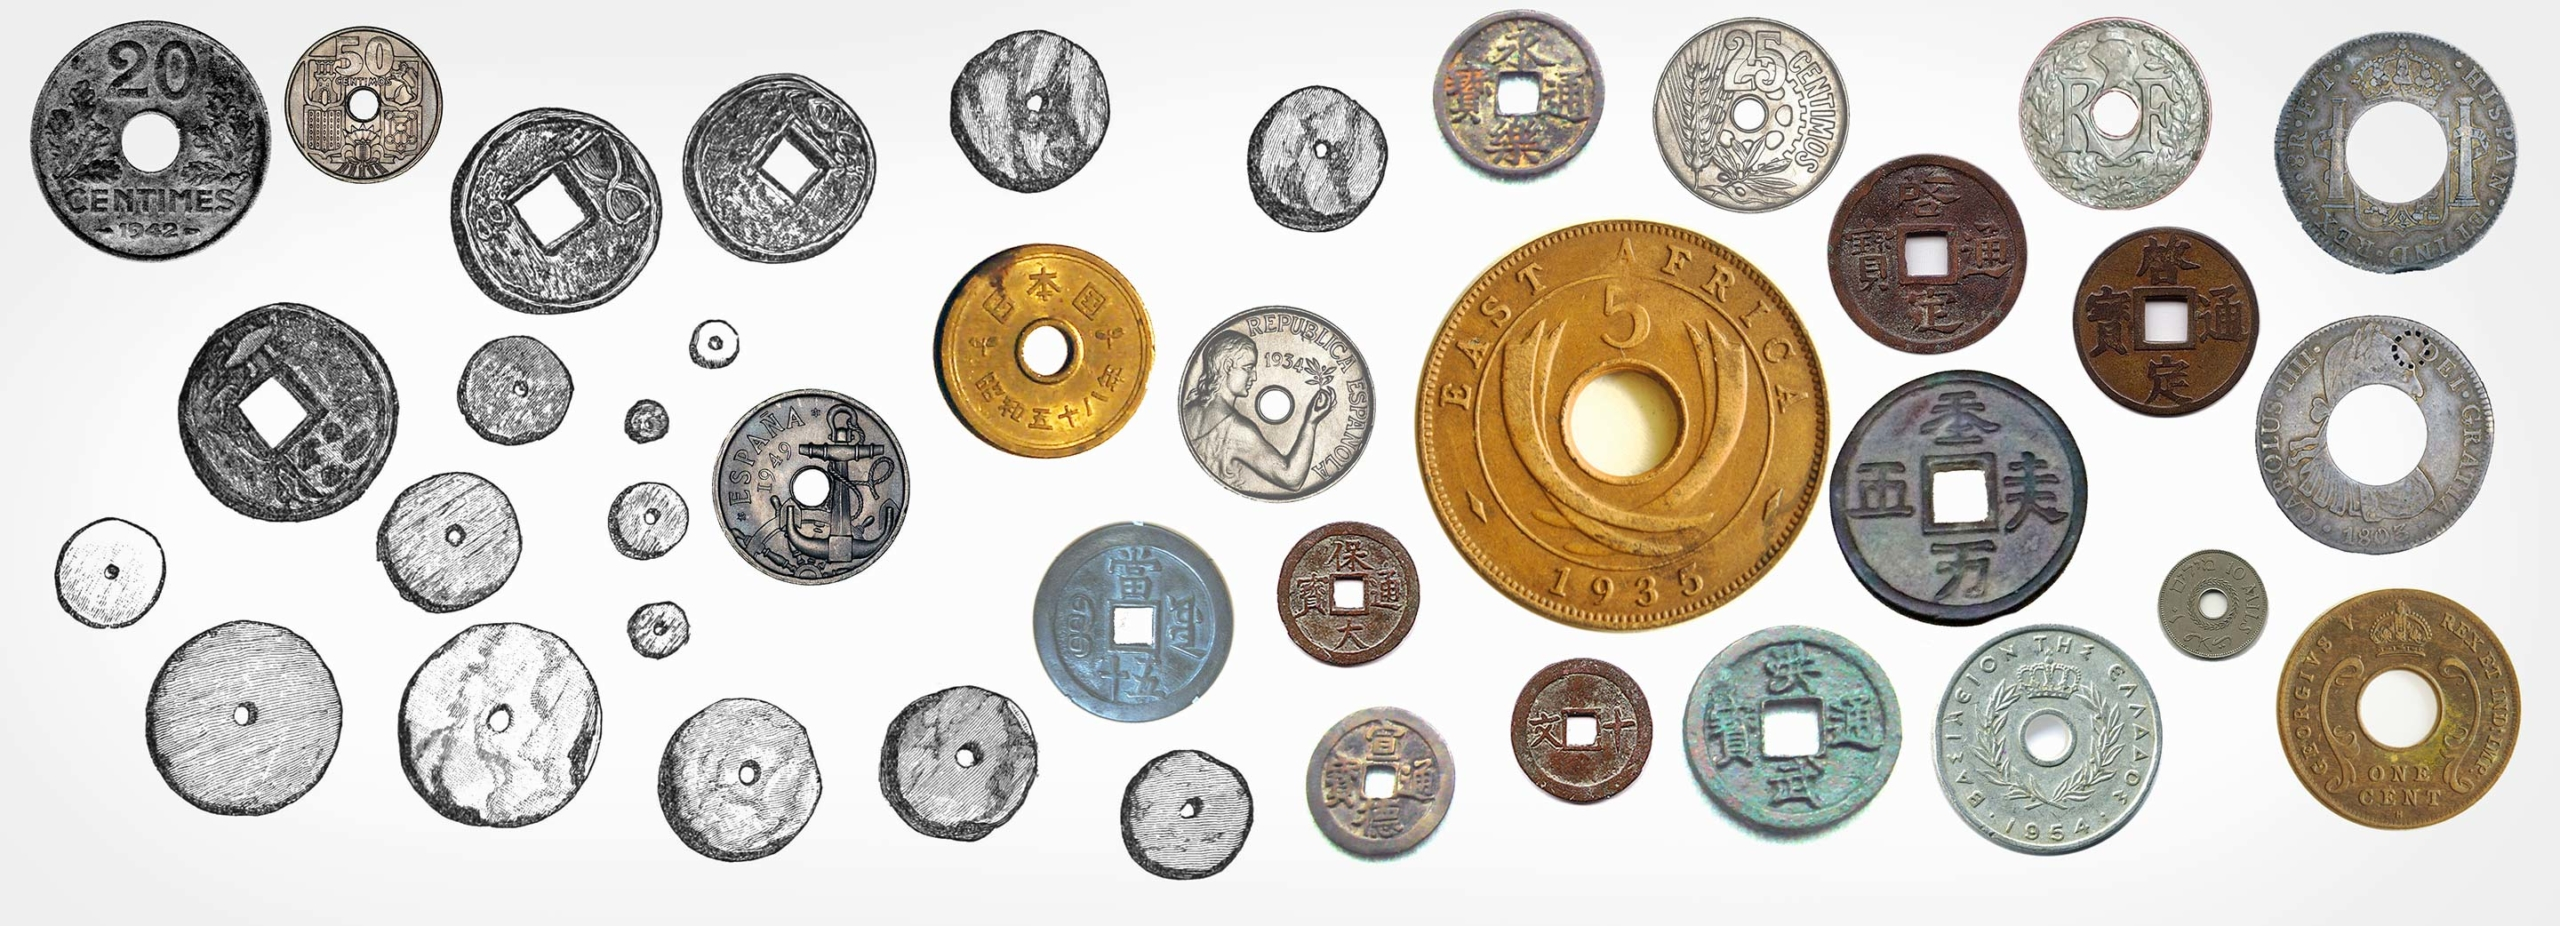 Coins and historic sketches of coined currency with holes.